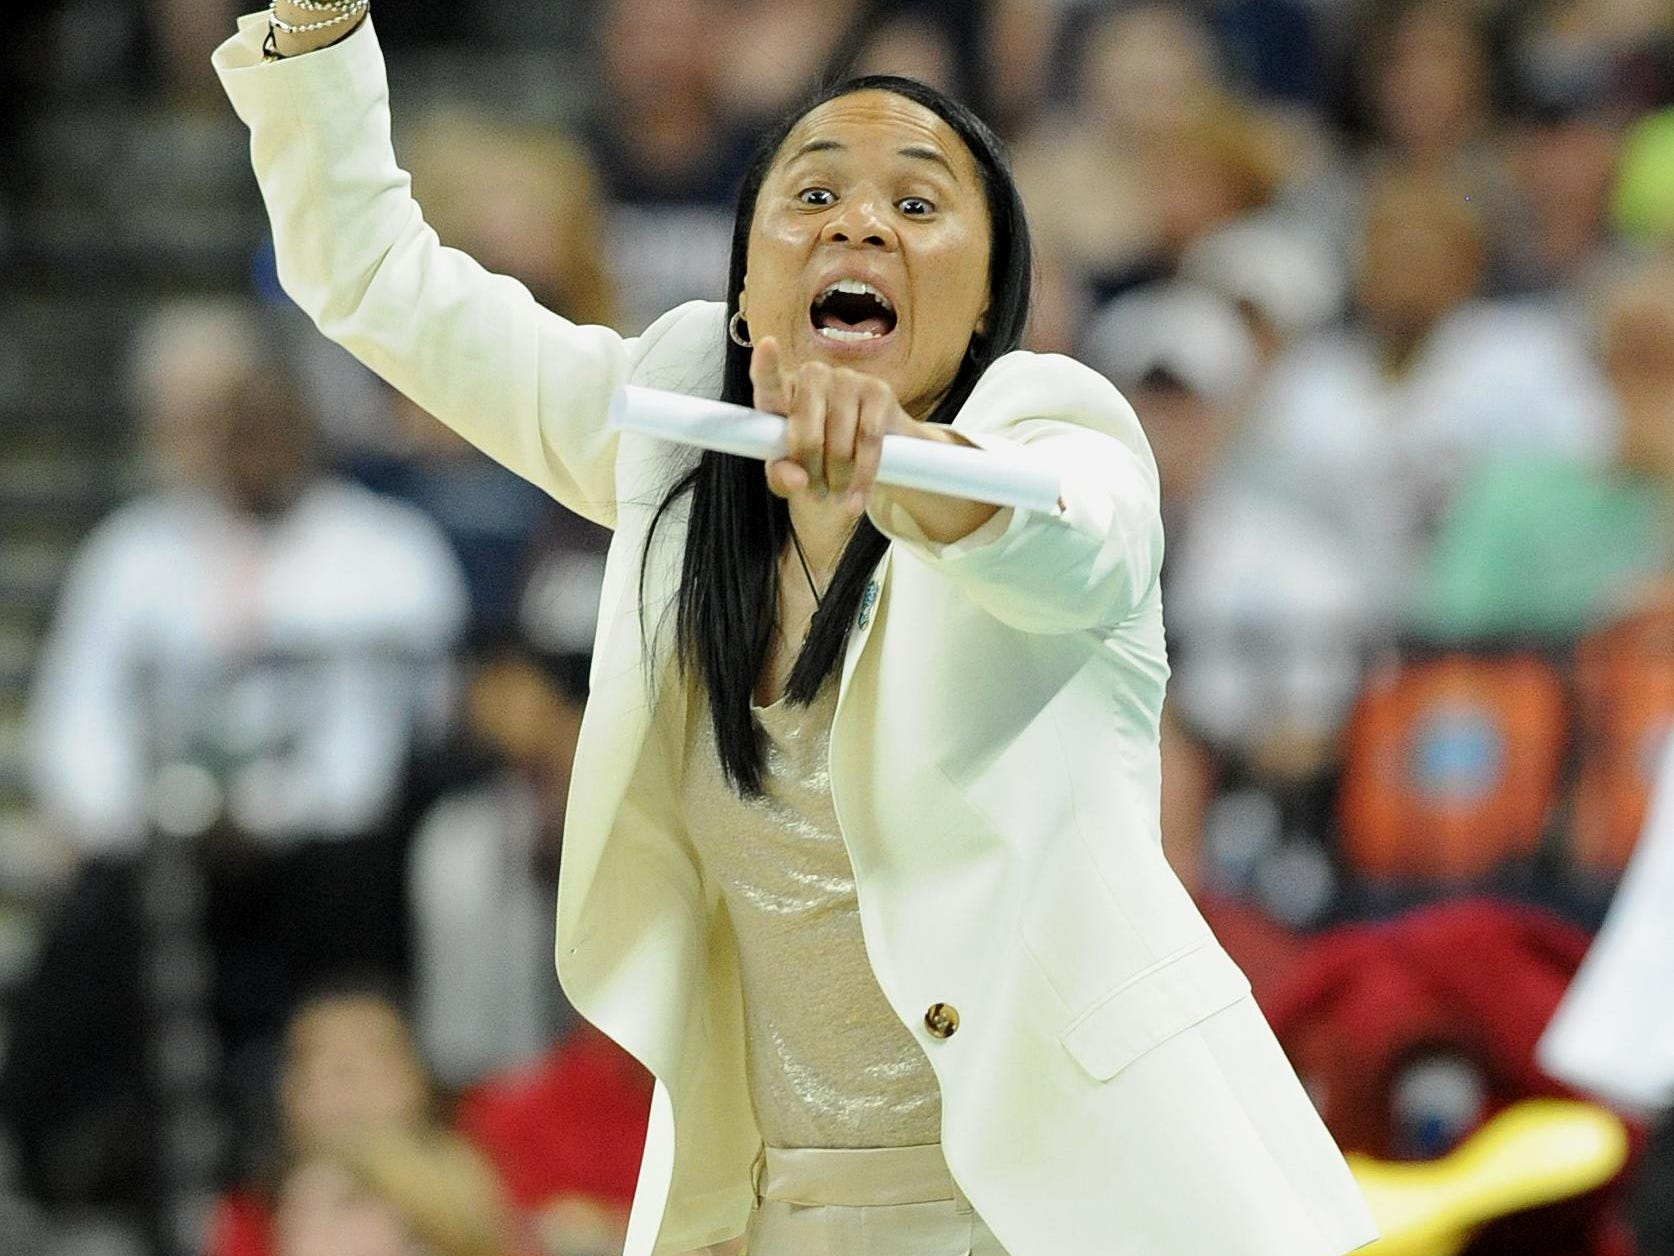 South Carolina coach Dawn Staley is excited to welcome Canadian point guard Shay Colley to the Gamecocks women's basketball team.